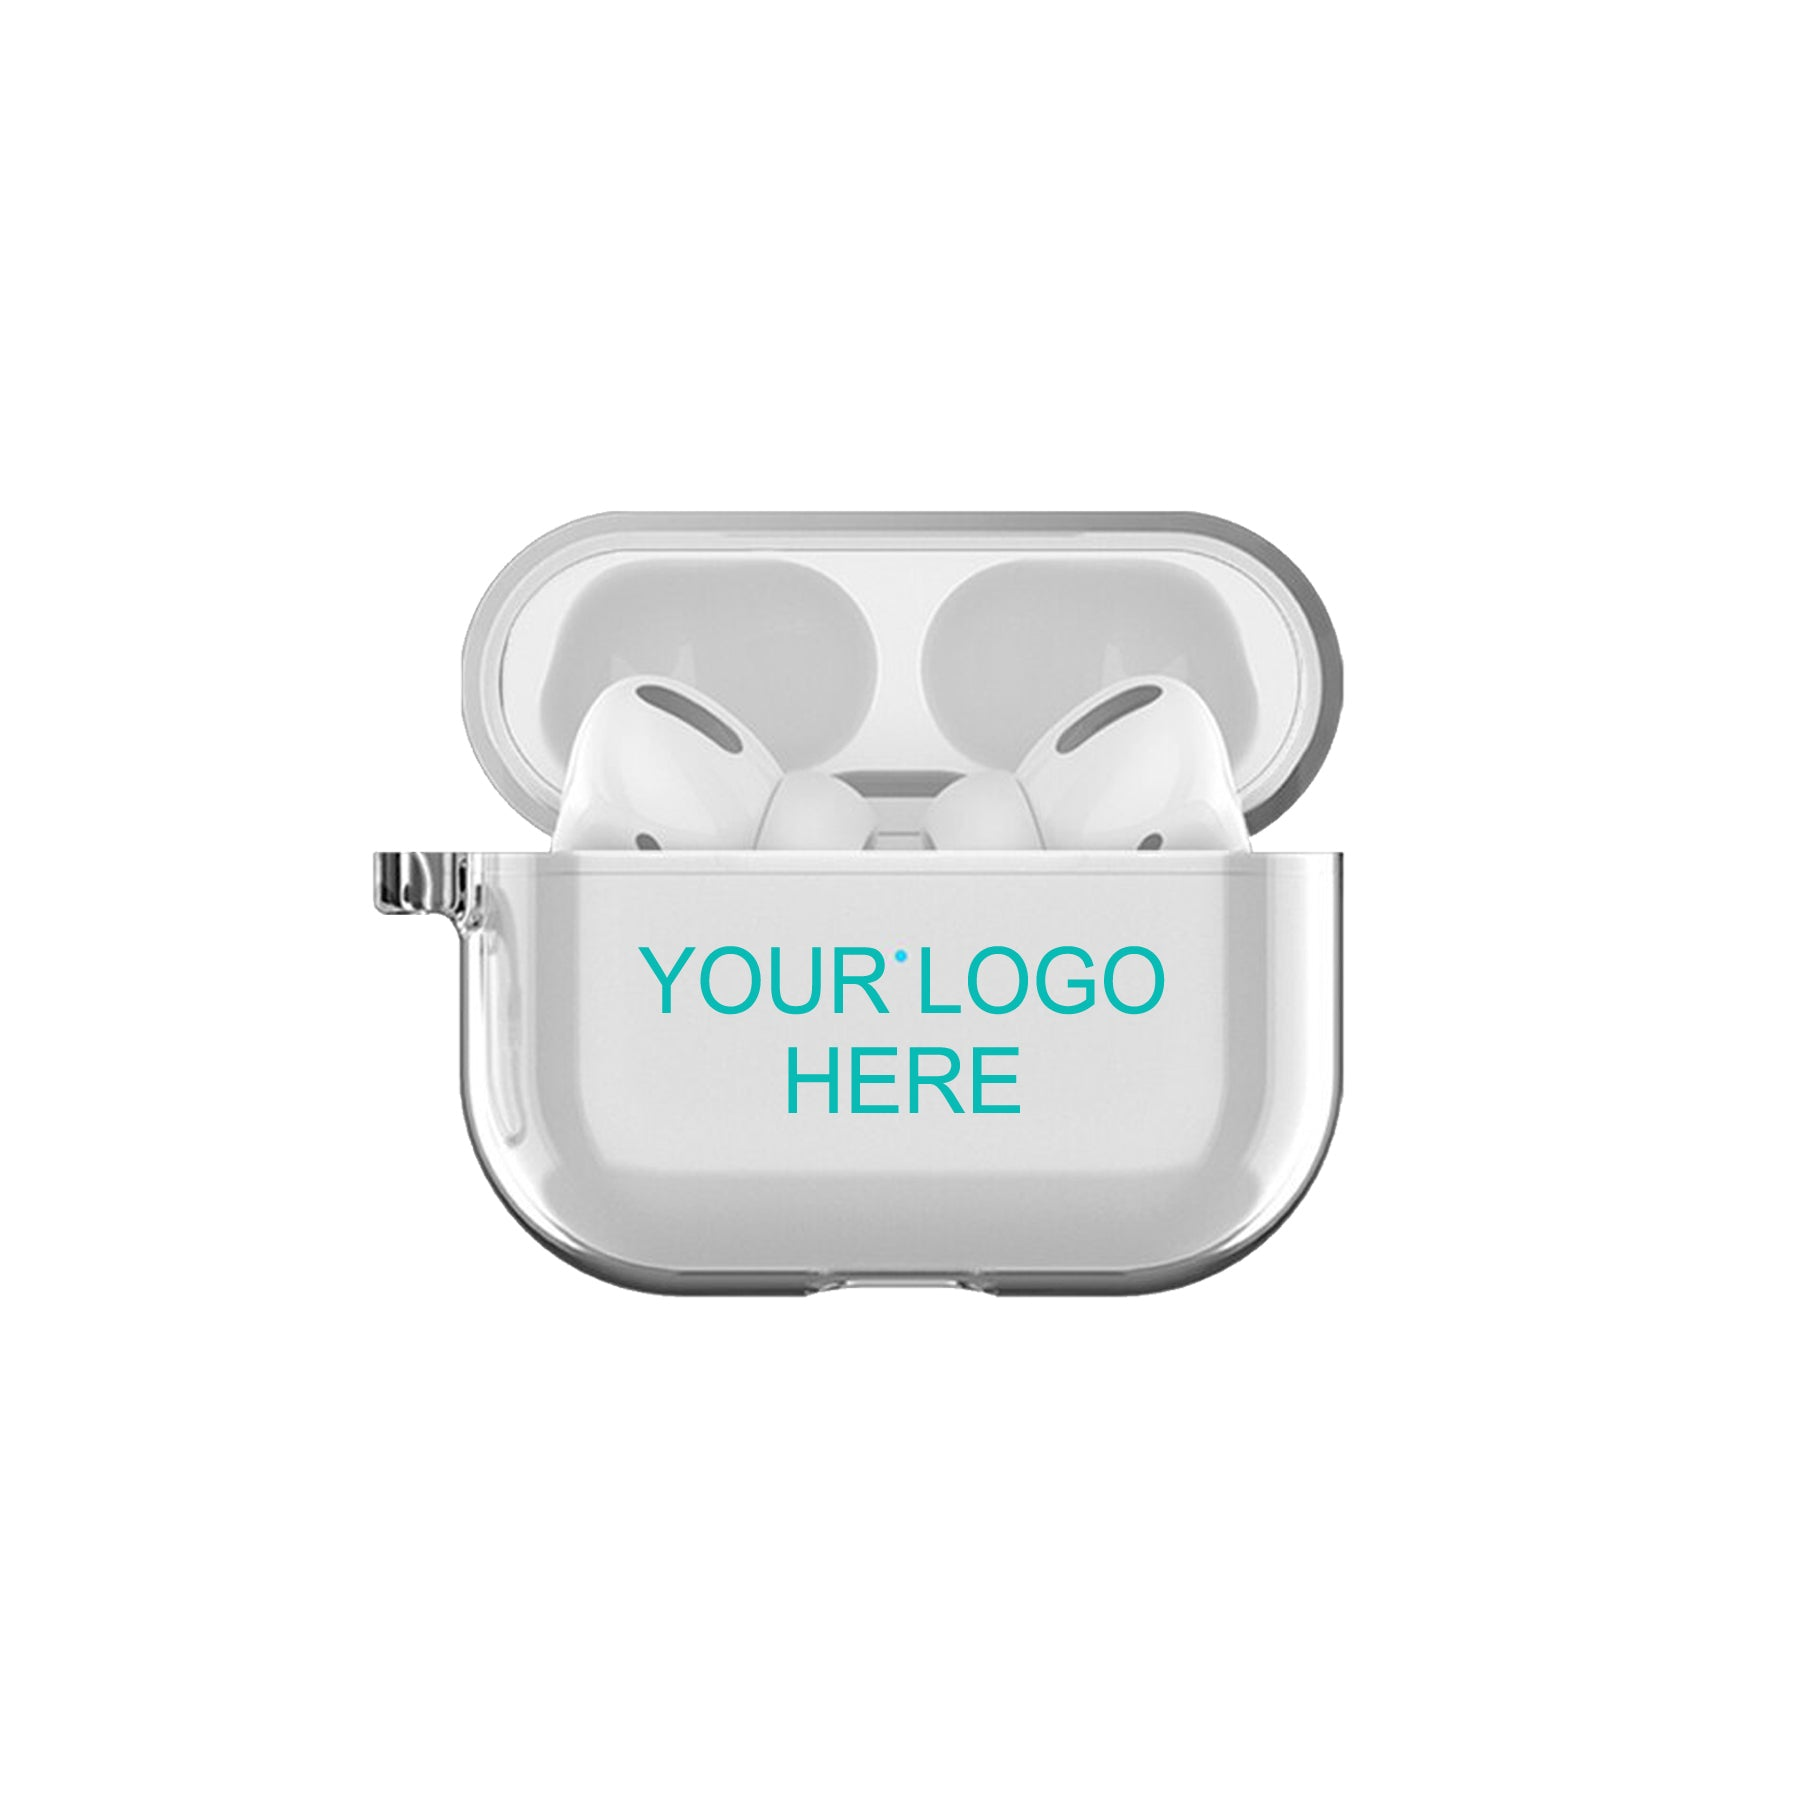 Airpods Pro - Customized Logo Airpods Pro Case